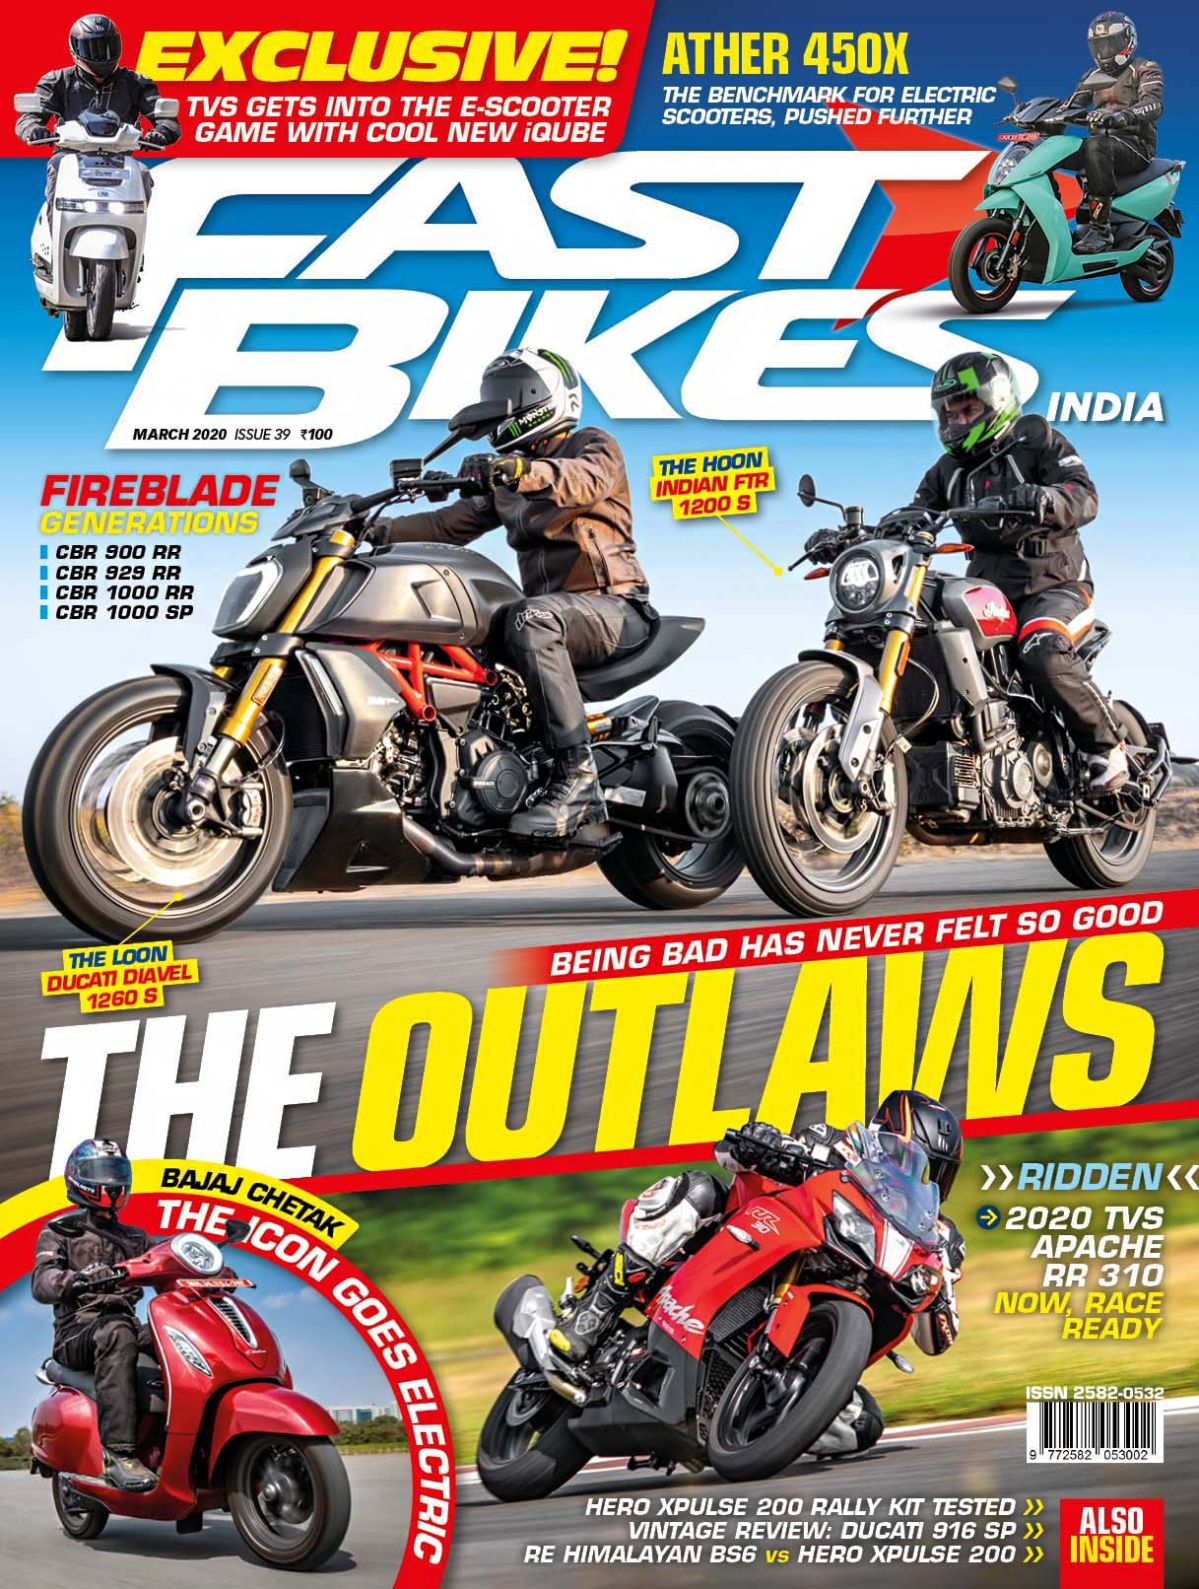 Fast Bikes India March issue: On Stands Now!